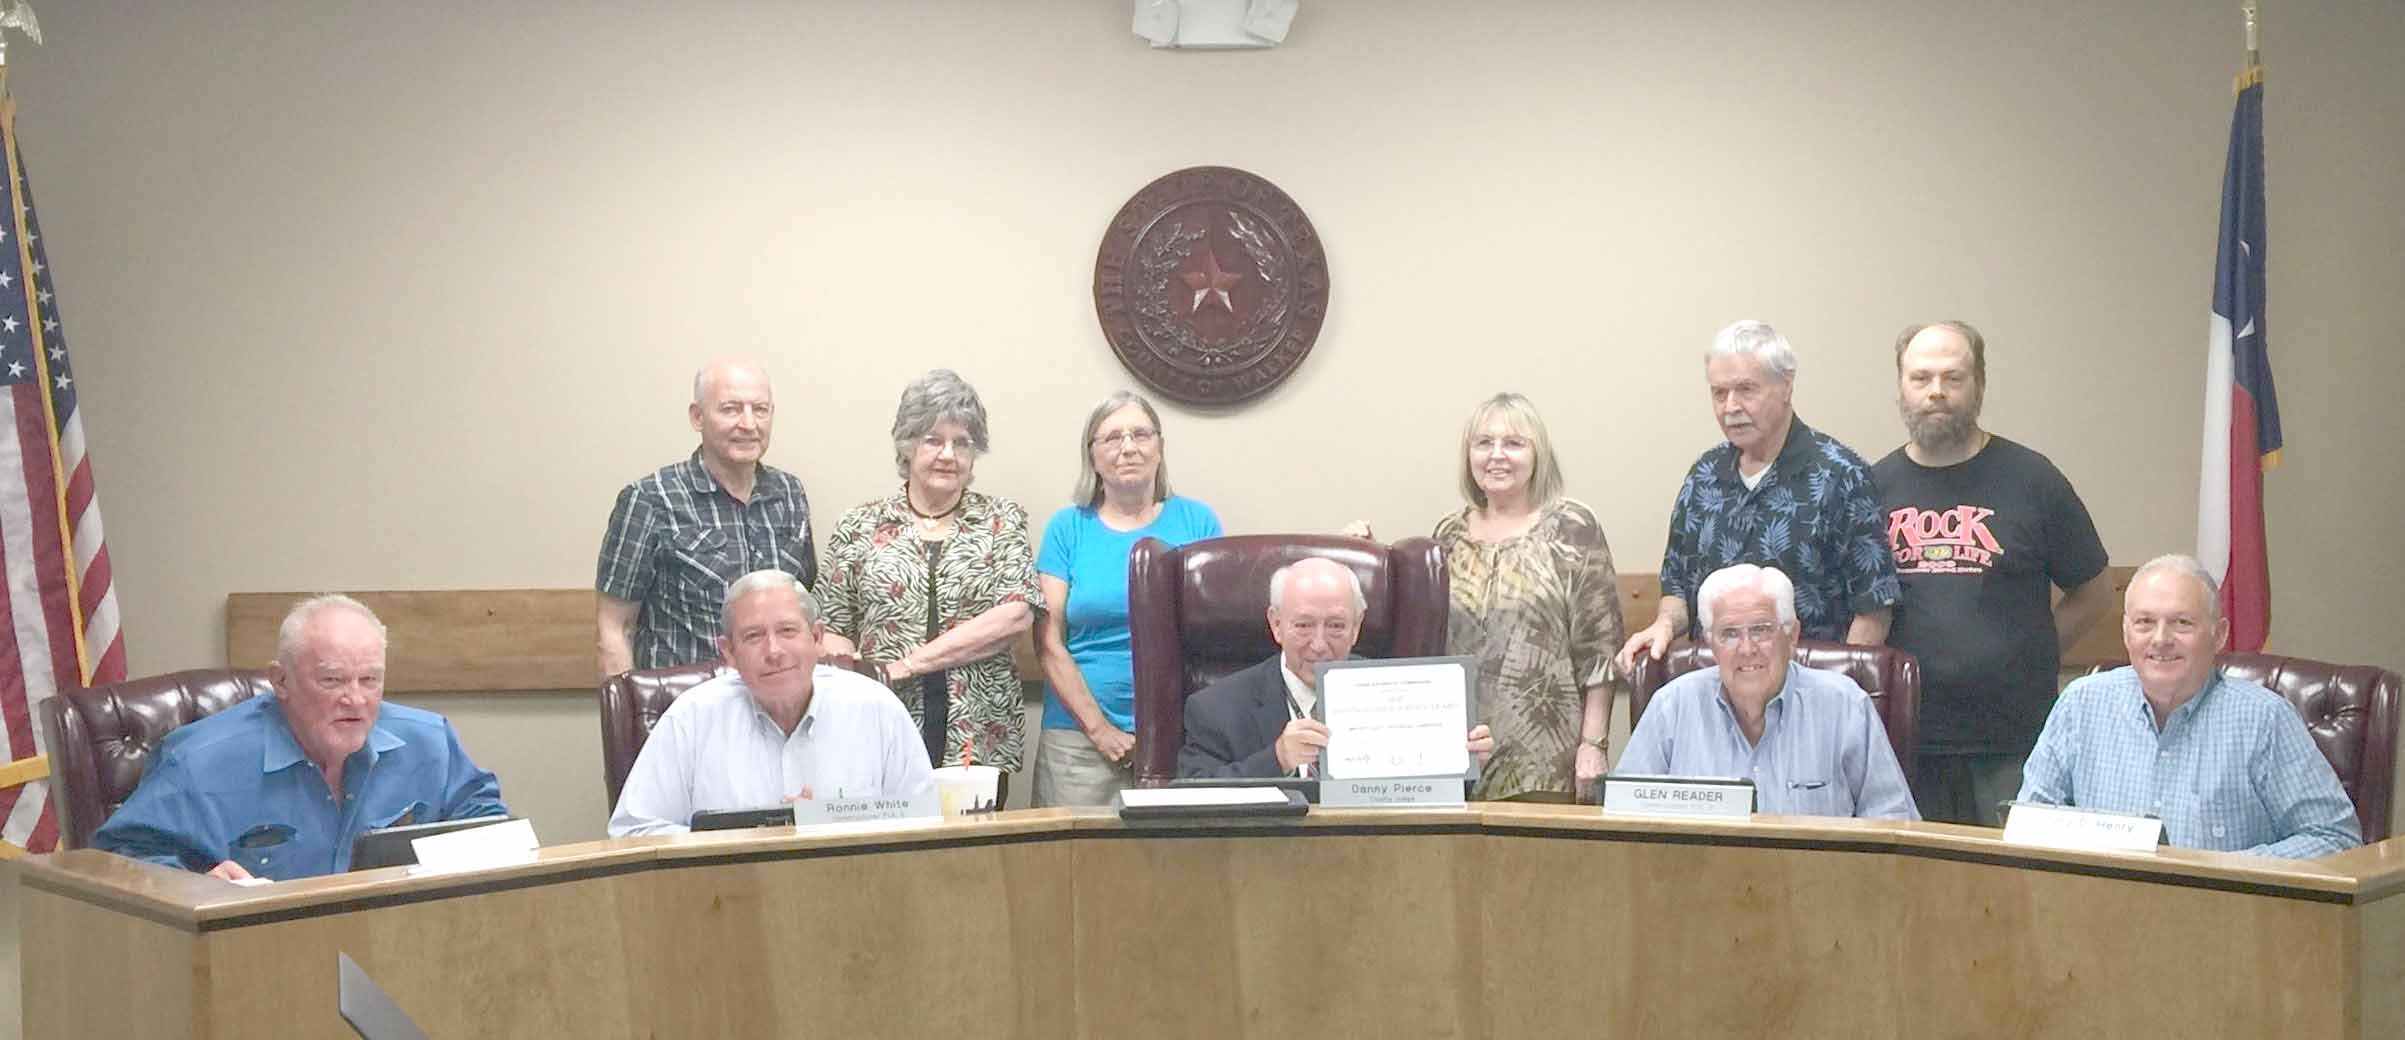 Walker County History presented by the Walker County